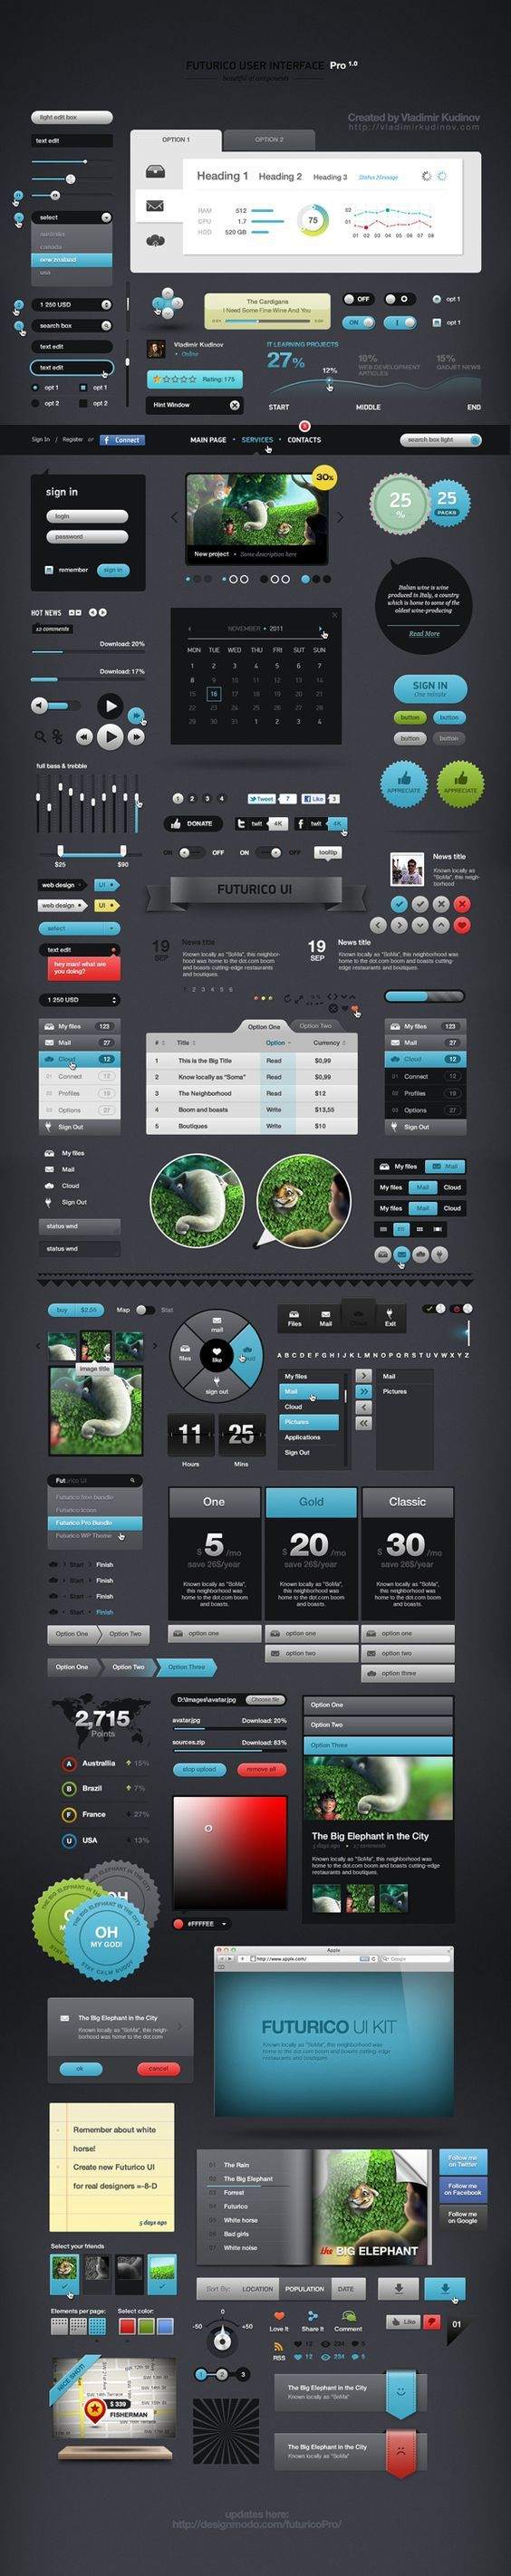 U in love  with Behance too? (scheduled via http://www.tailwindapp.com?utm_source=pinterest&utm_medium=twpin&utm_content=post28873196&utm_campaign=scheduler_attribution)